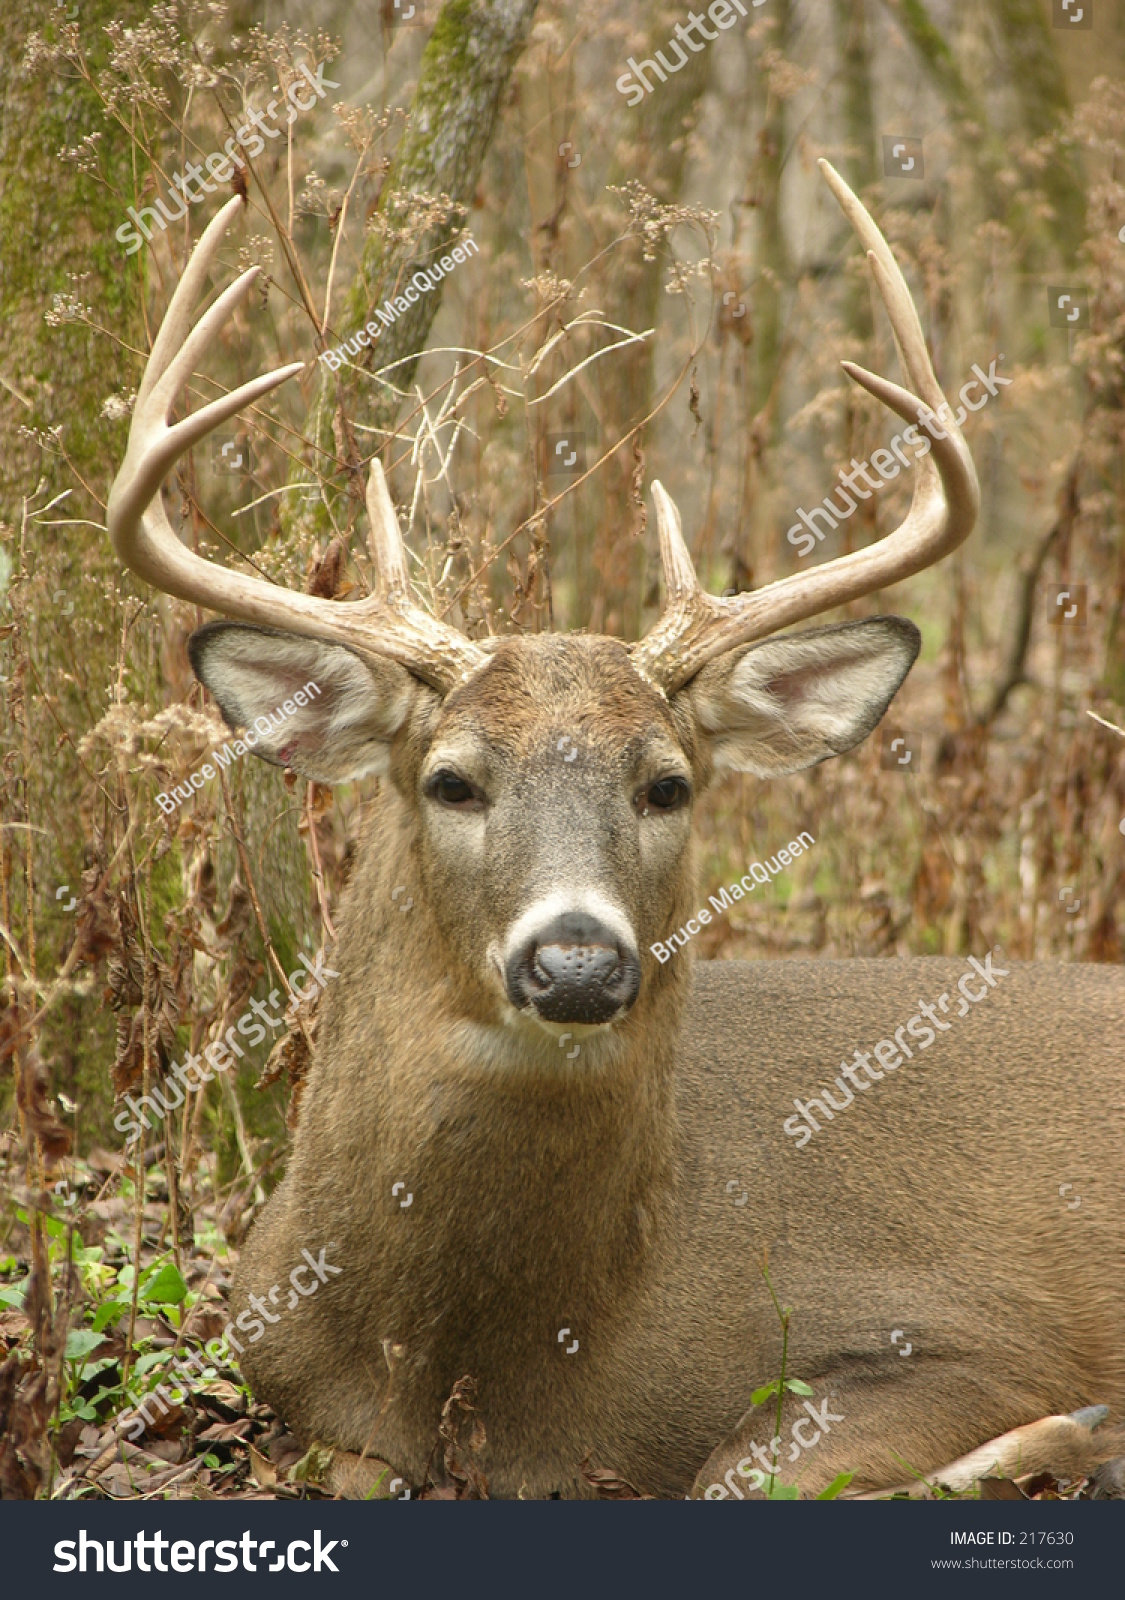 Whitetail Deer Buck Bedded In A Thicket During The Rut. Stock Photo 217630 : Shutterstock